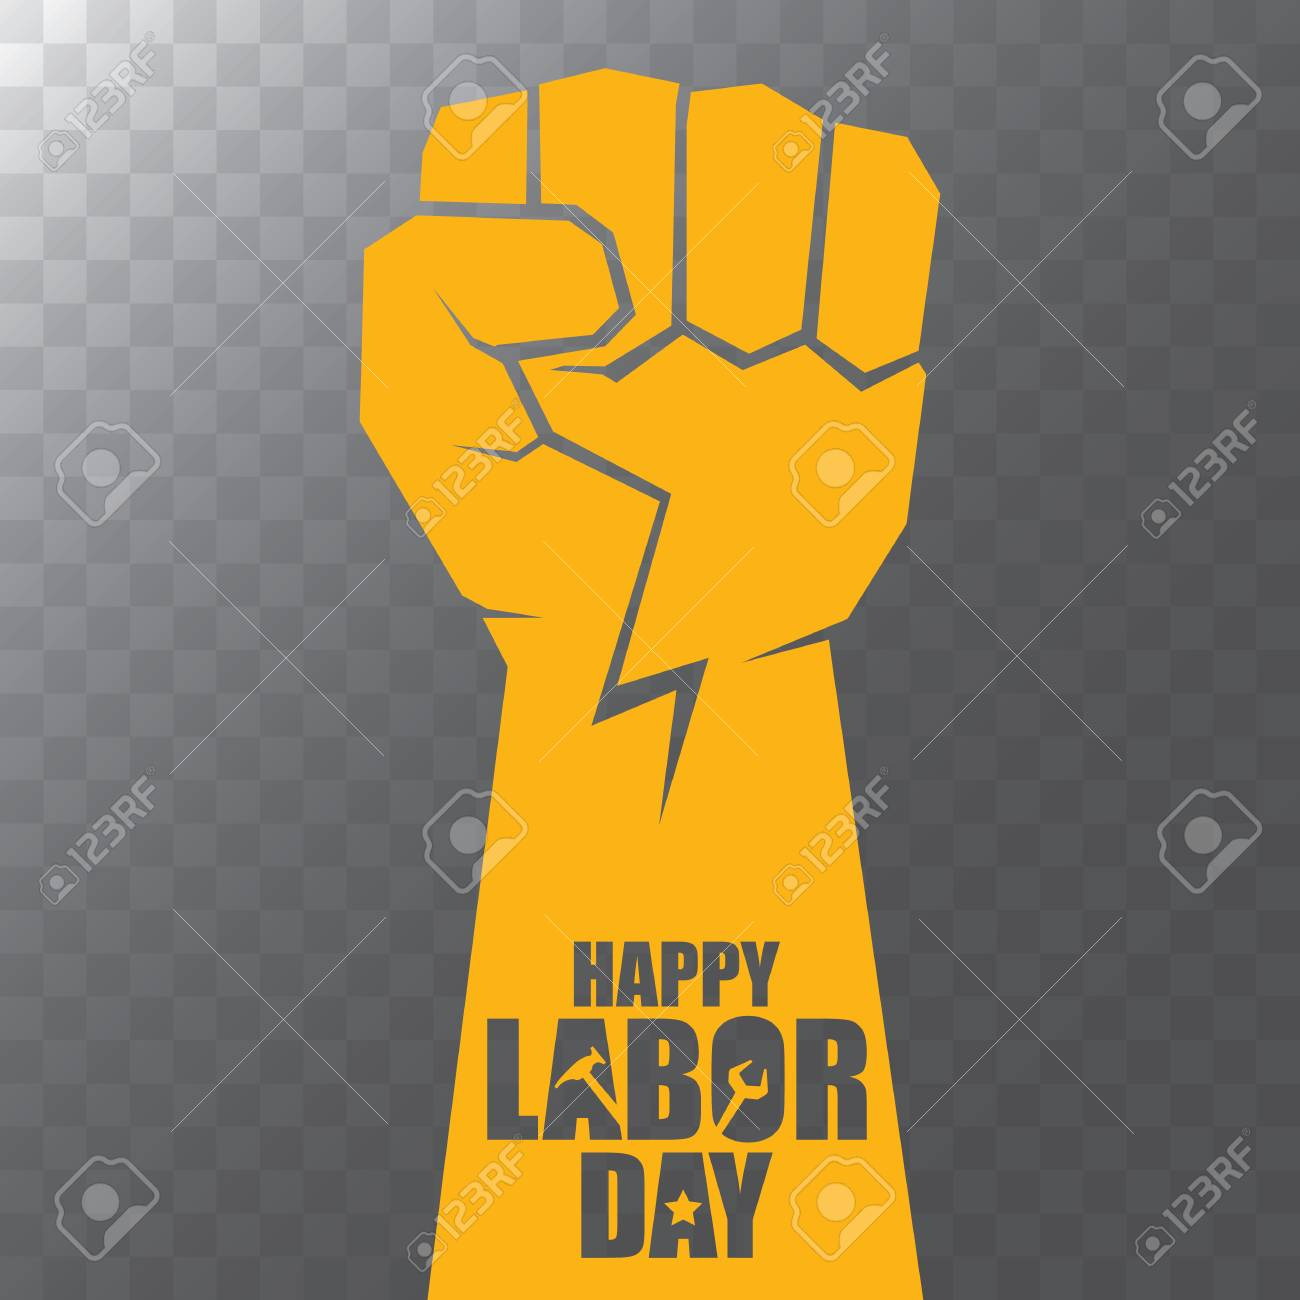 vector labor day Usa label or background. vector happy labor day poster or banner with clenched fist isolated on transparent background . Labor union icon - 106231540